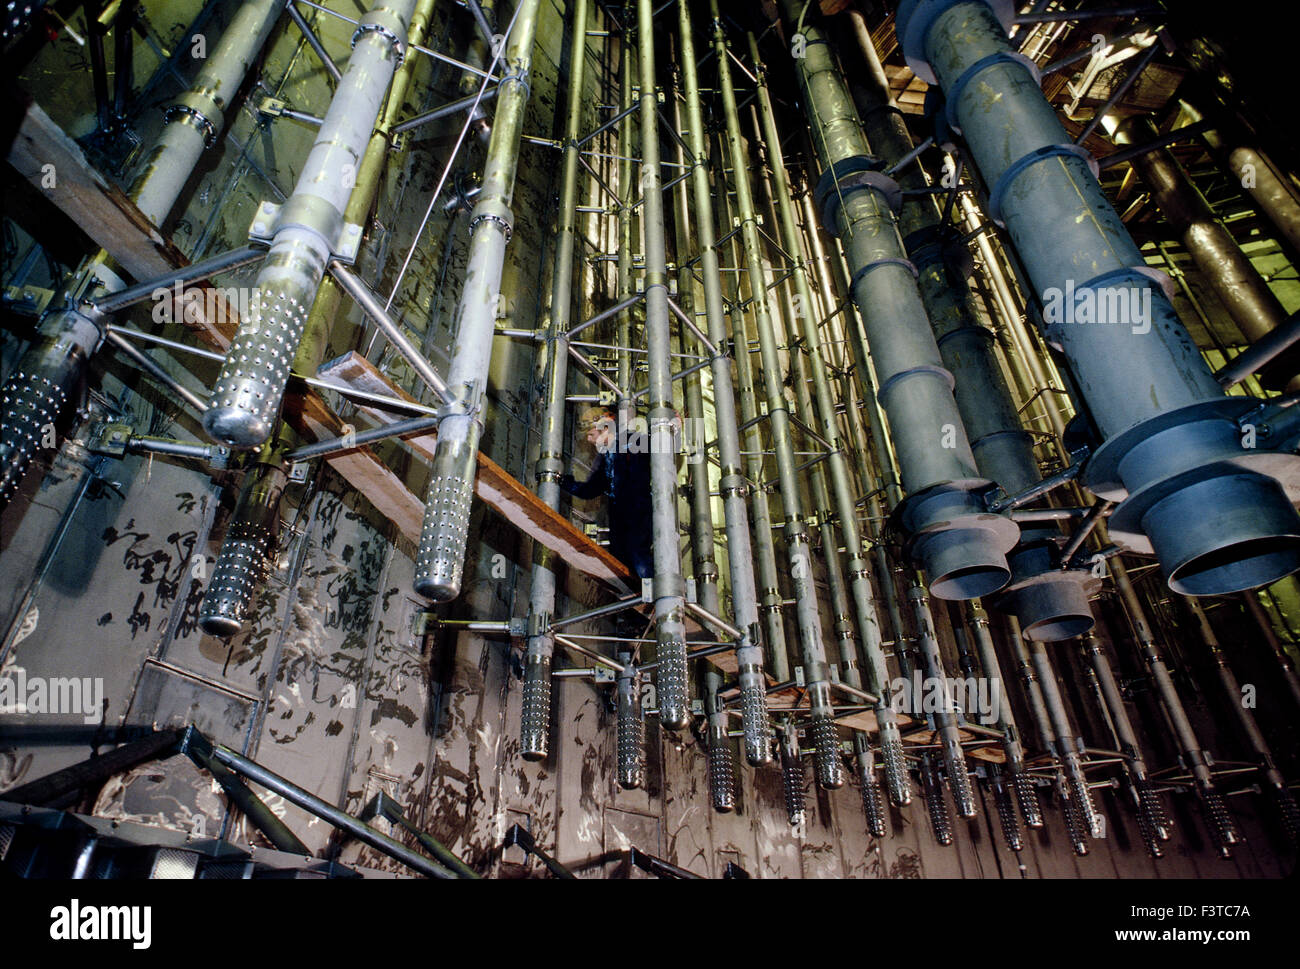 Technician working on cooling rods, interior of nuclear power plant near Stockholm, Sweden - Stock Image